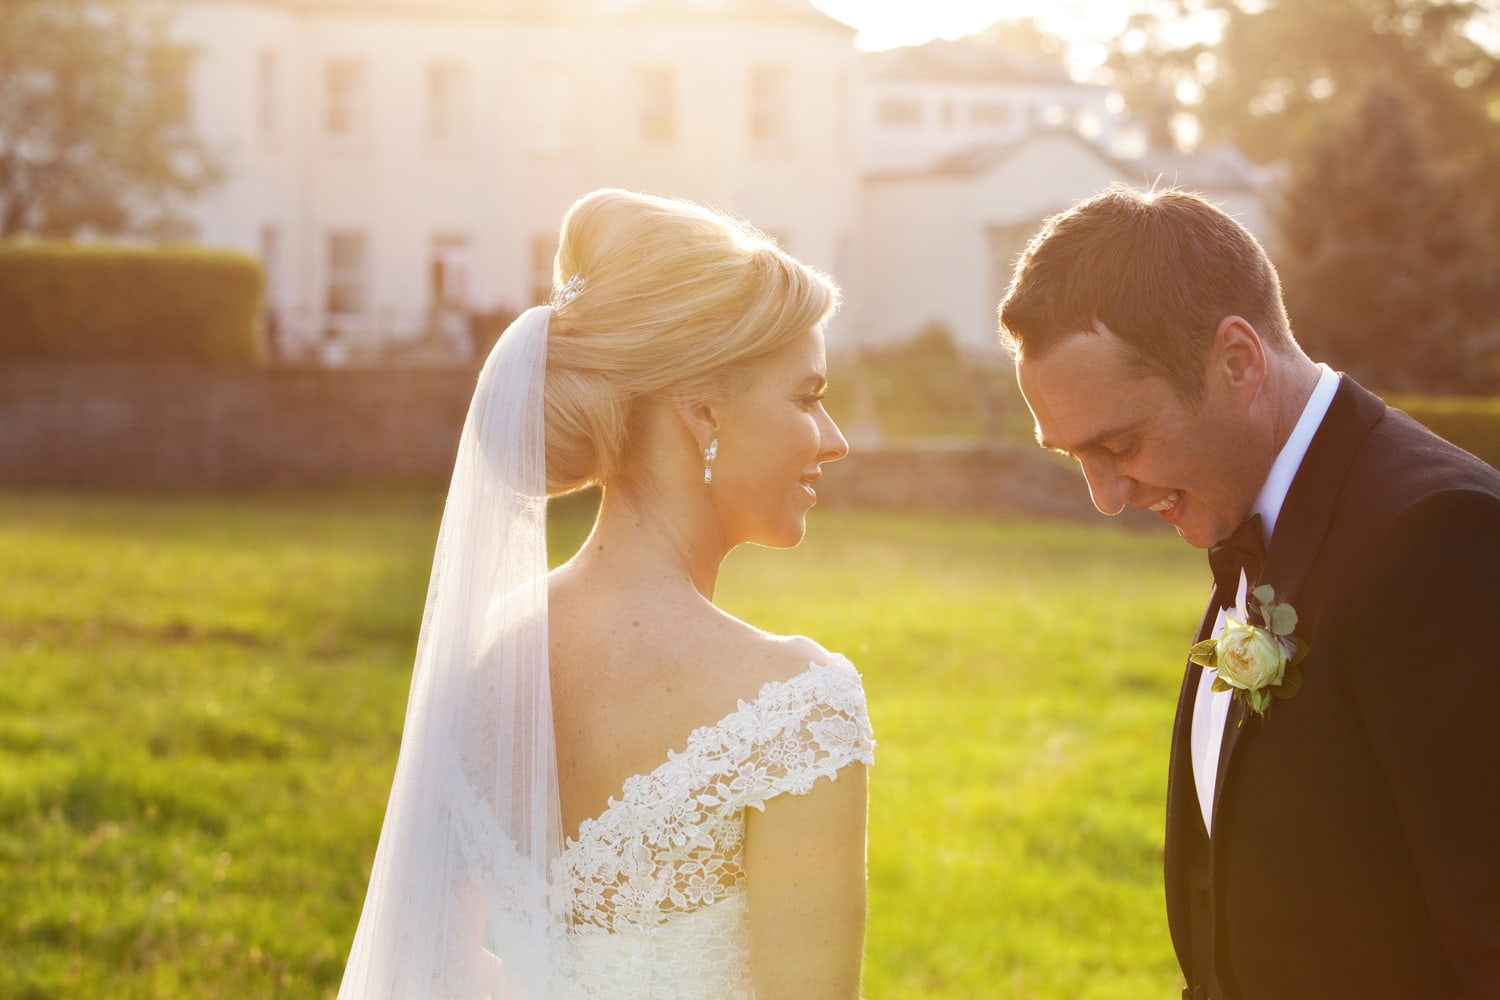 wedding photography Bride and Groom laughing on the lawn at Lartington Hall in the golden hour